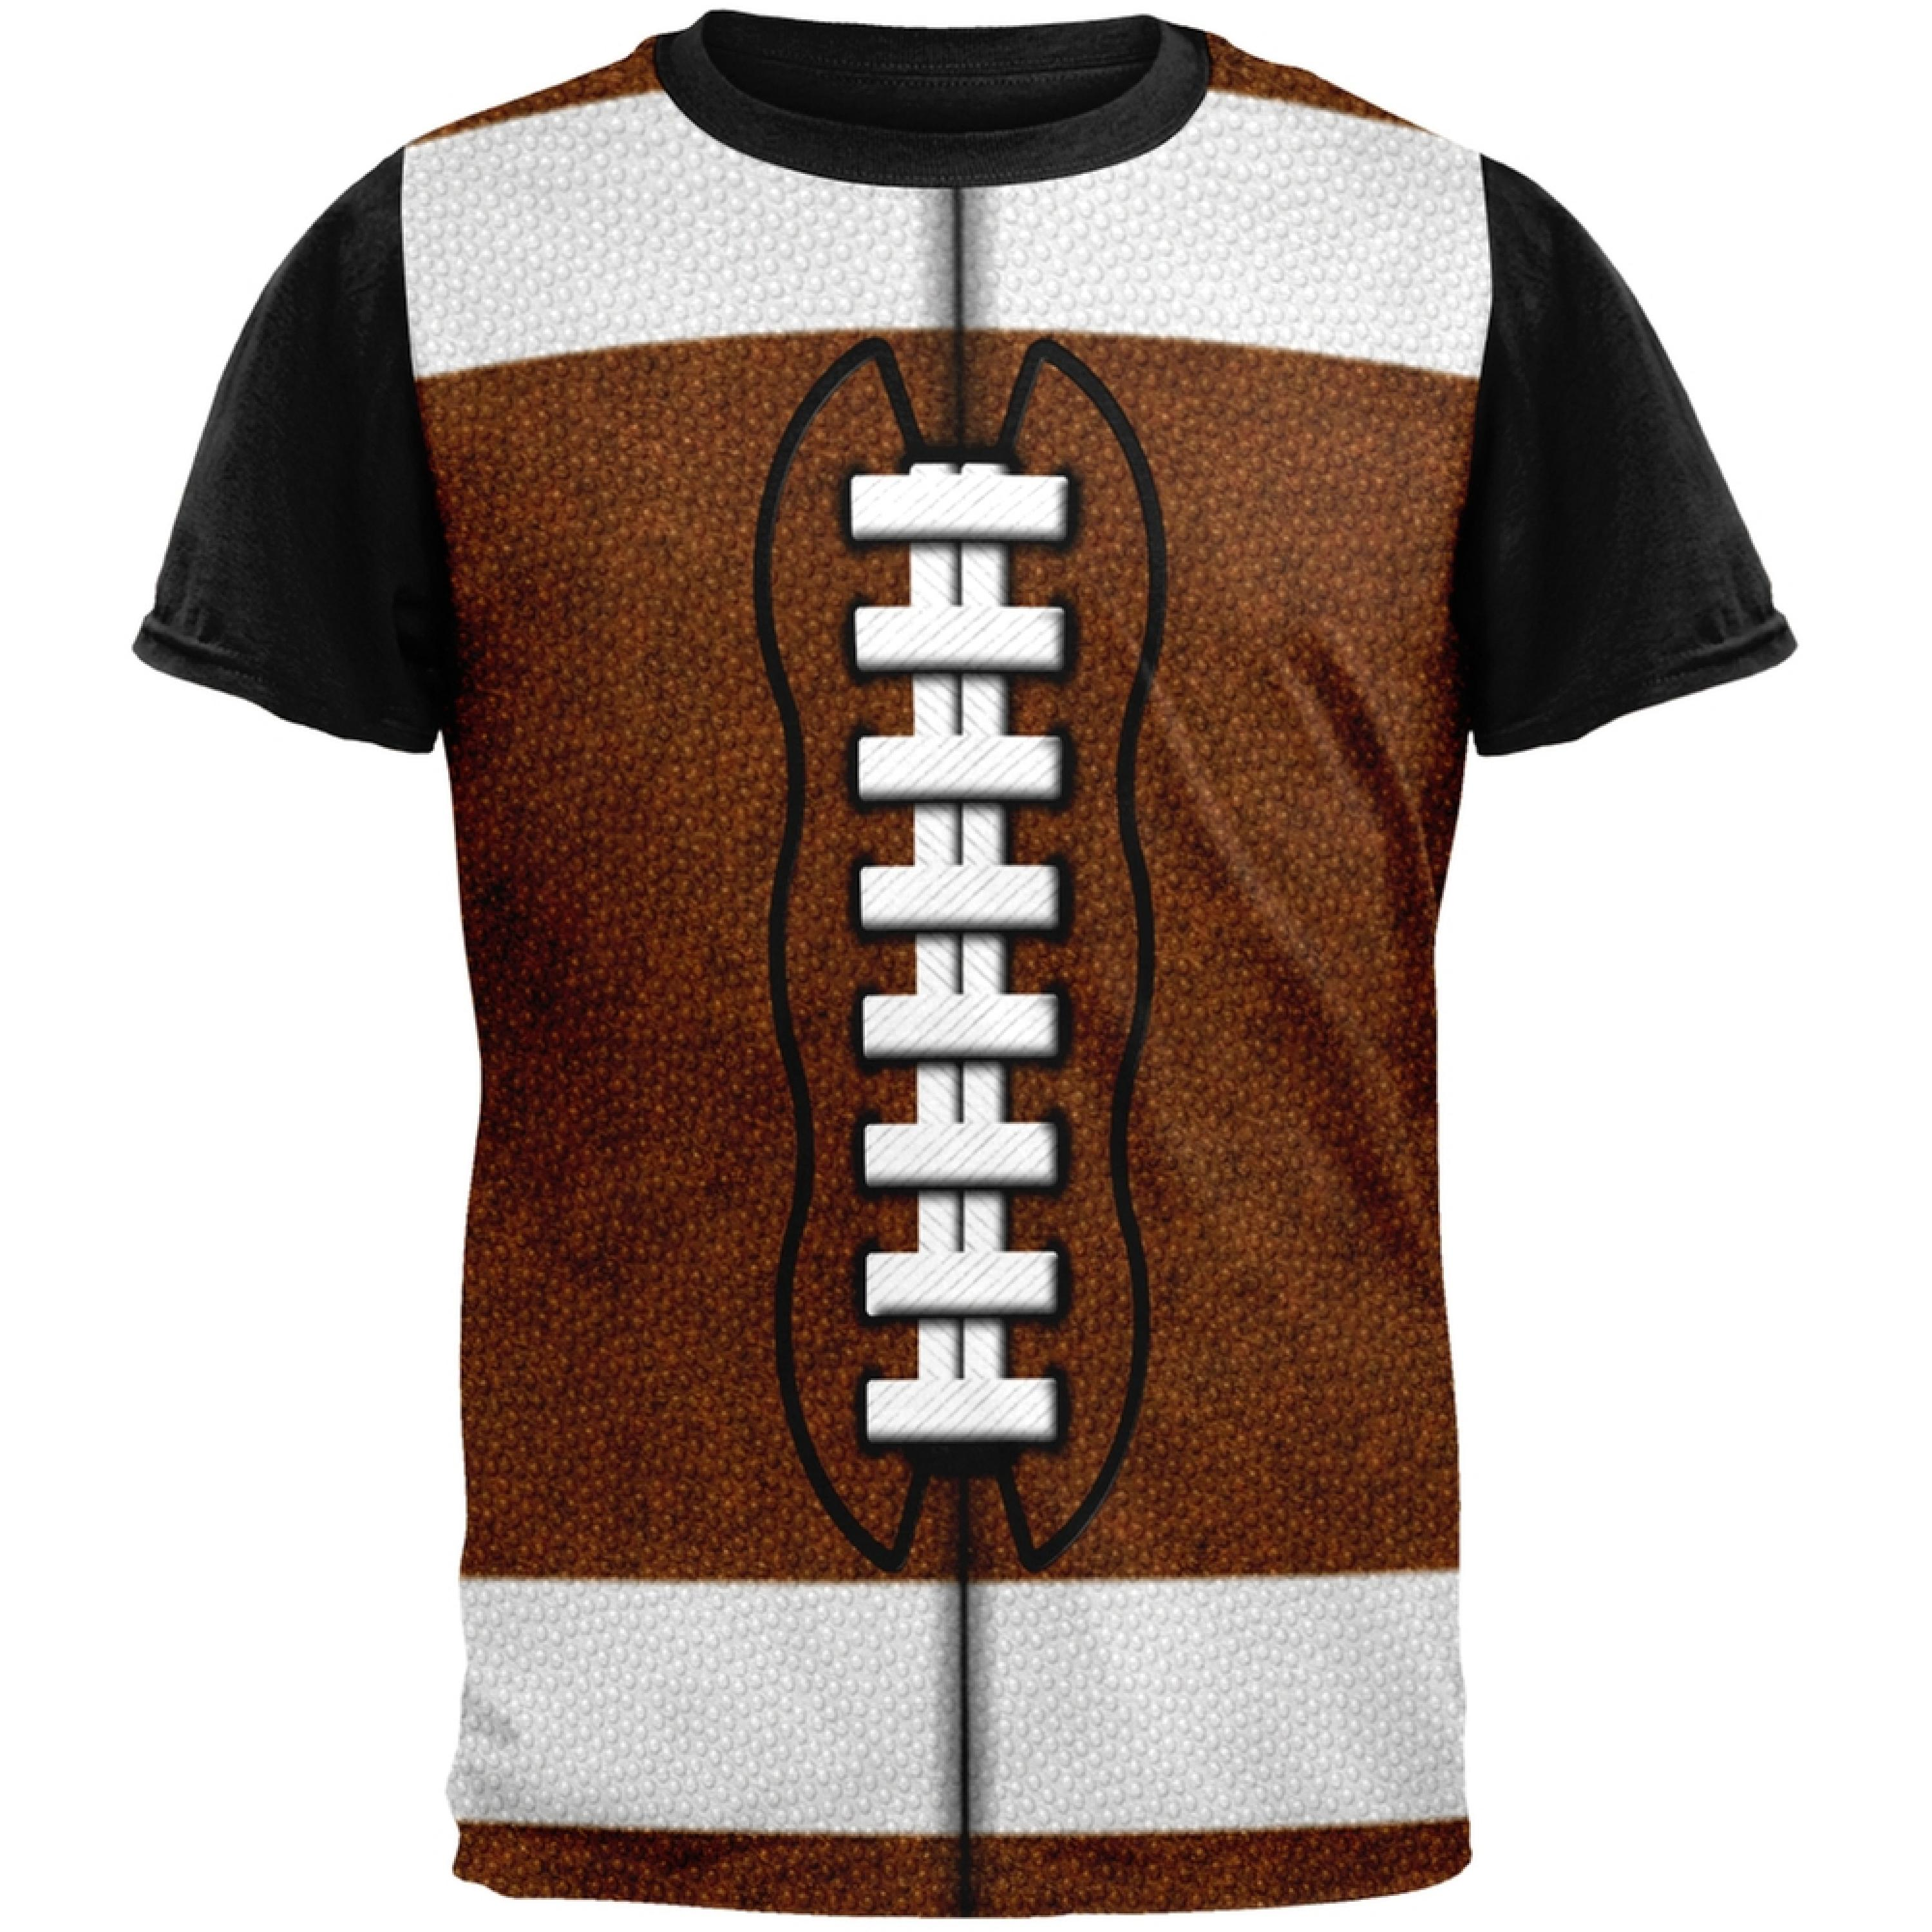 Football Costume Adult Black Back T-Shirt